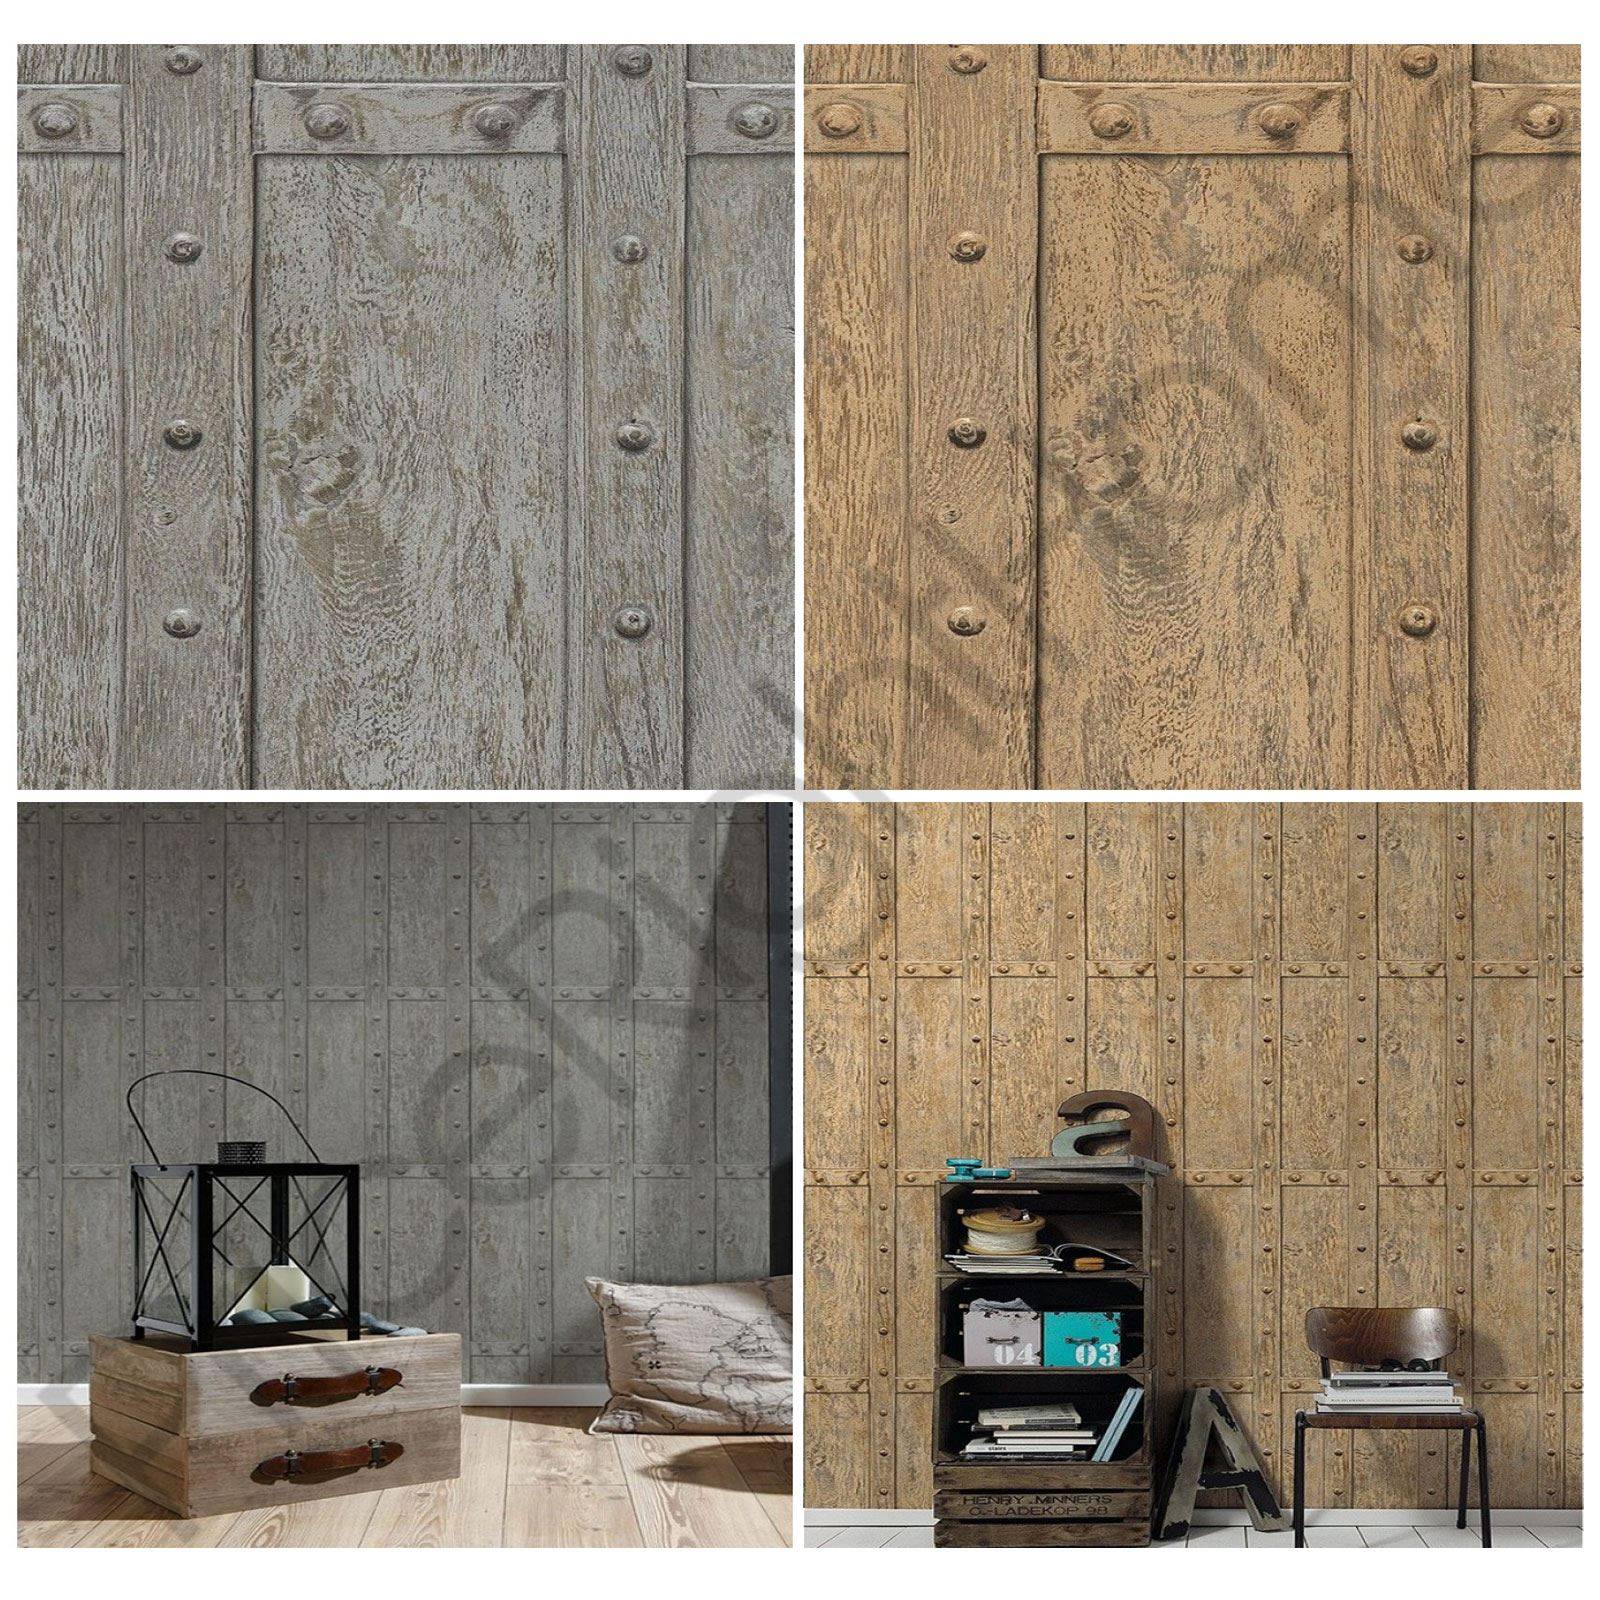 WOOD PANEL RIVETS WALLPAPER AS CREATION BROWN GREY FEATURE